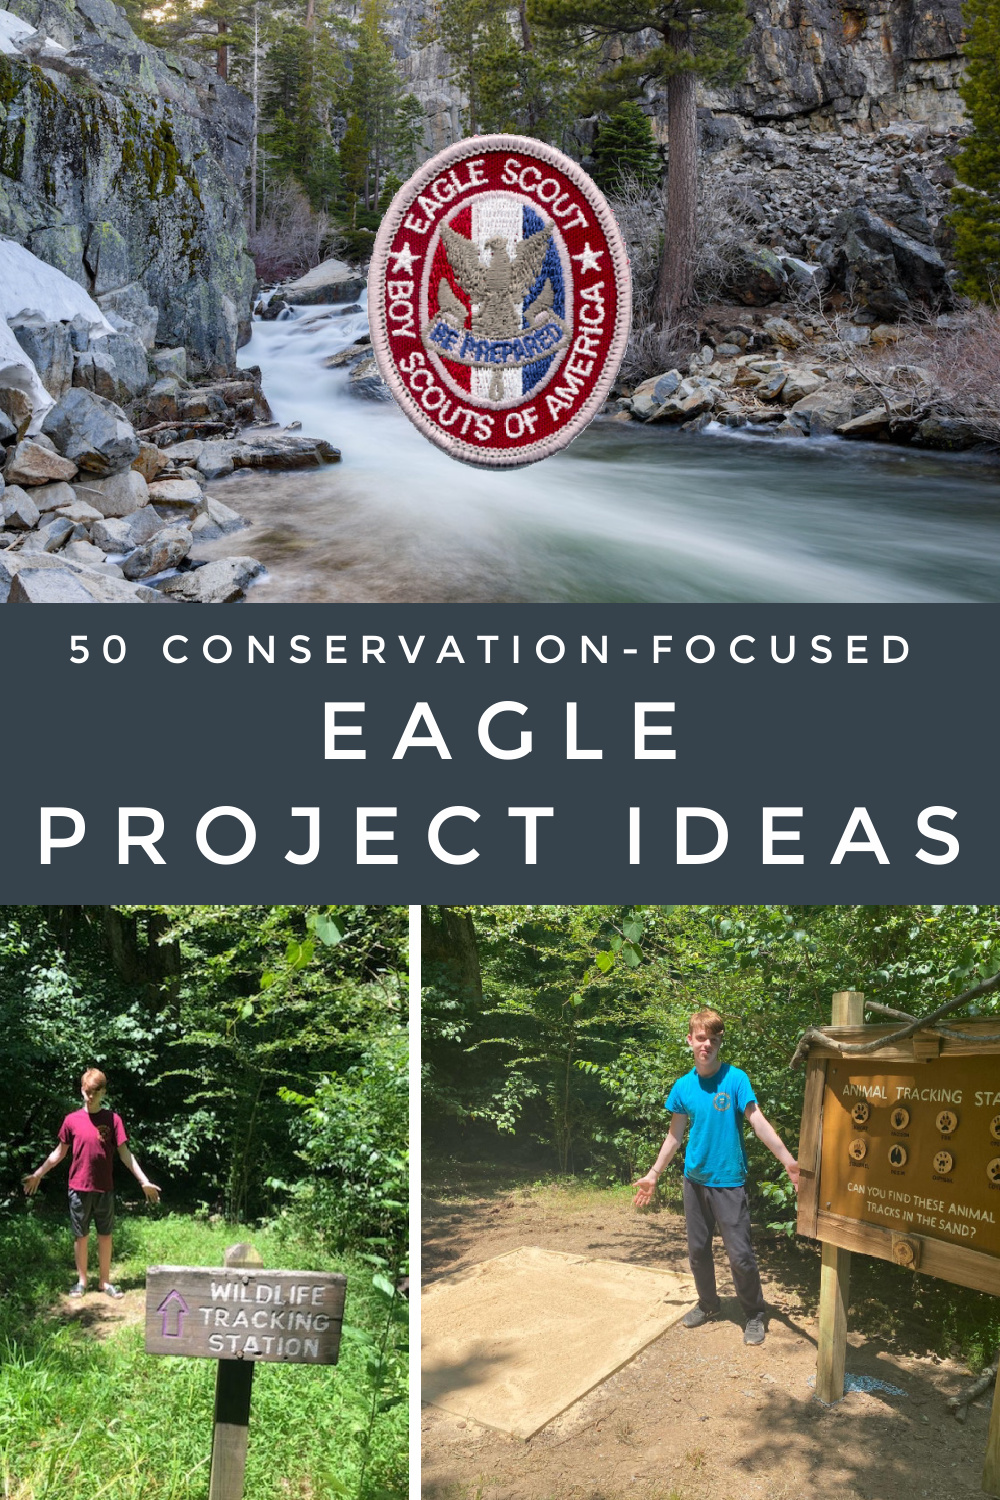 50 conservation-focused Eagle project ideas